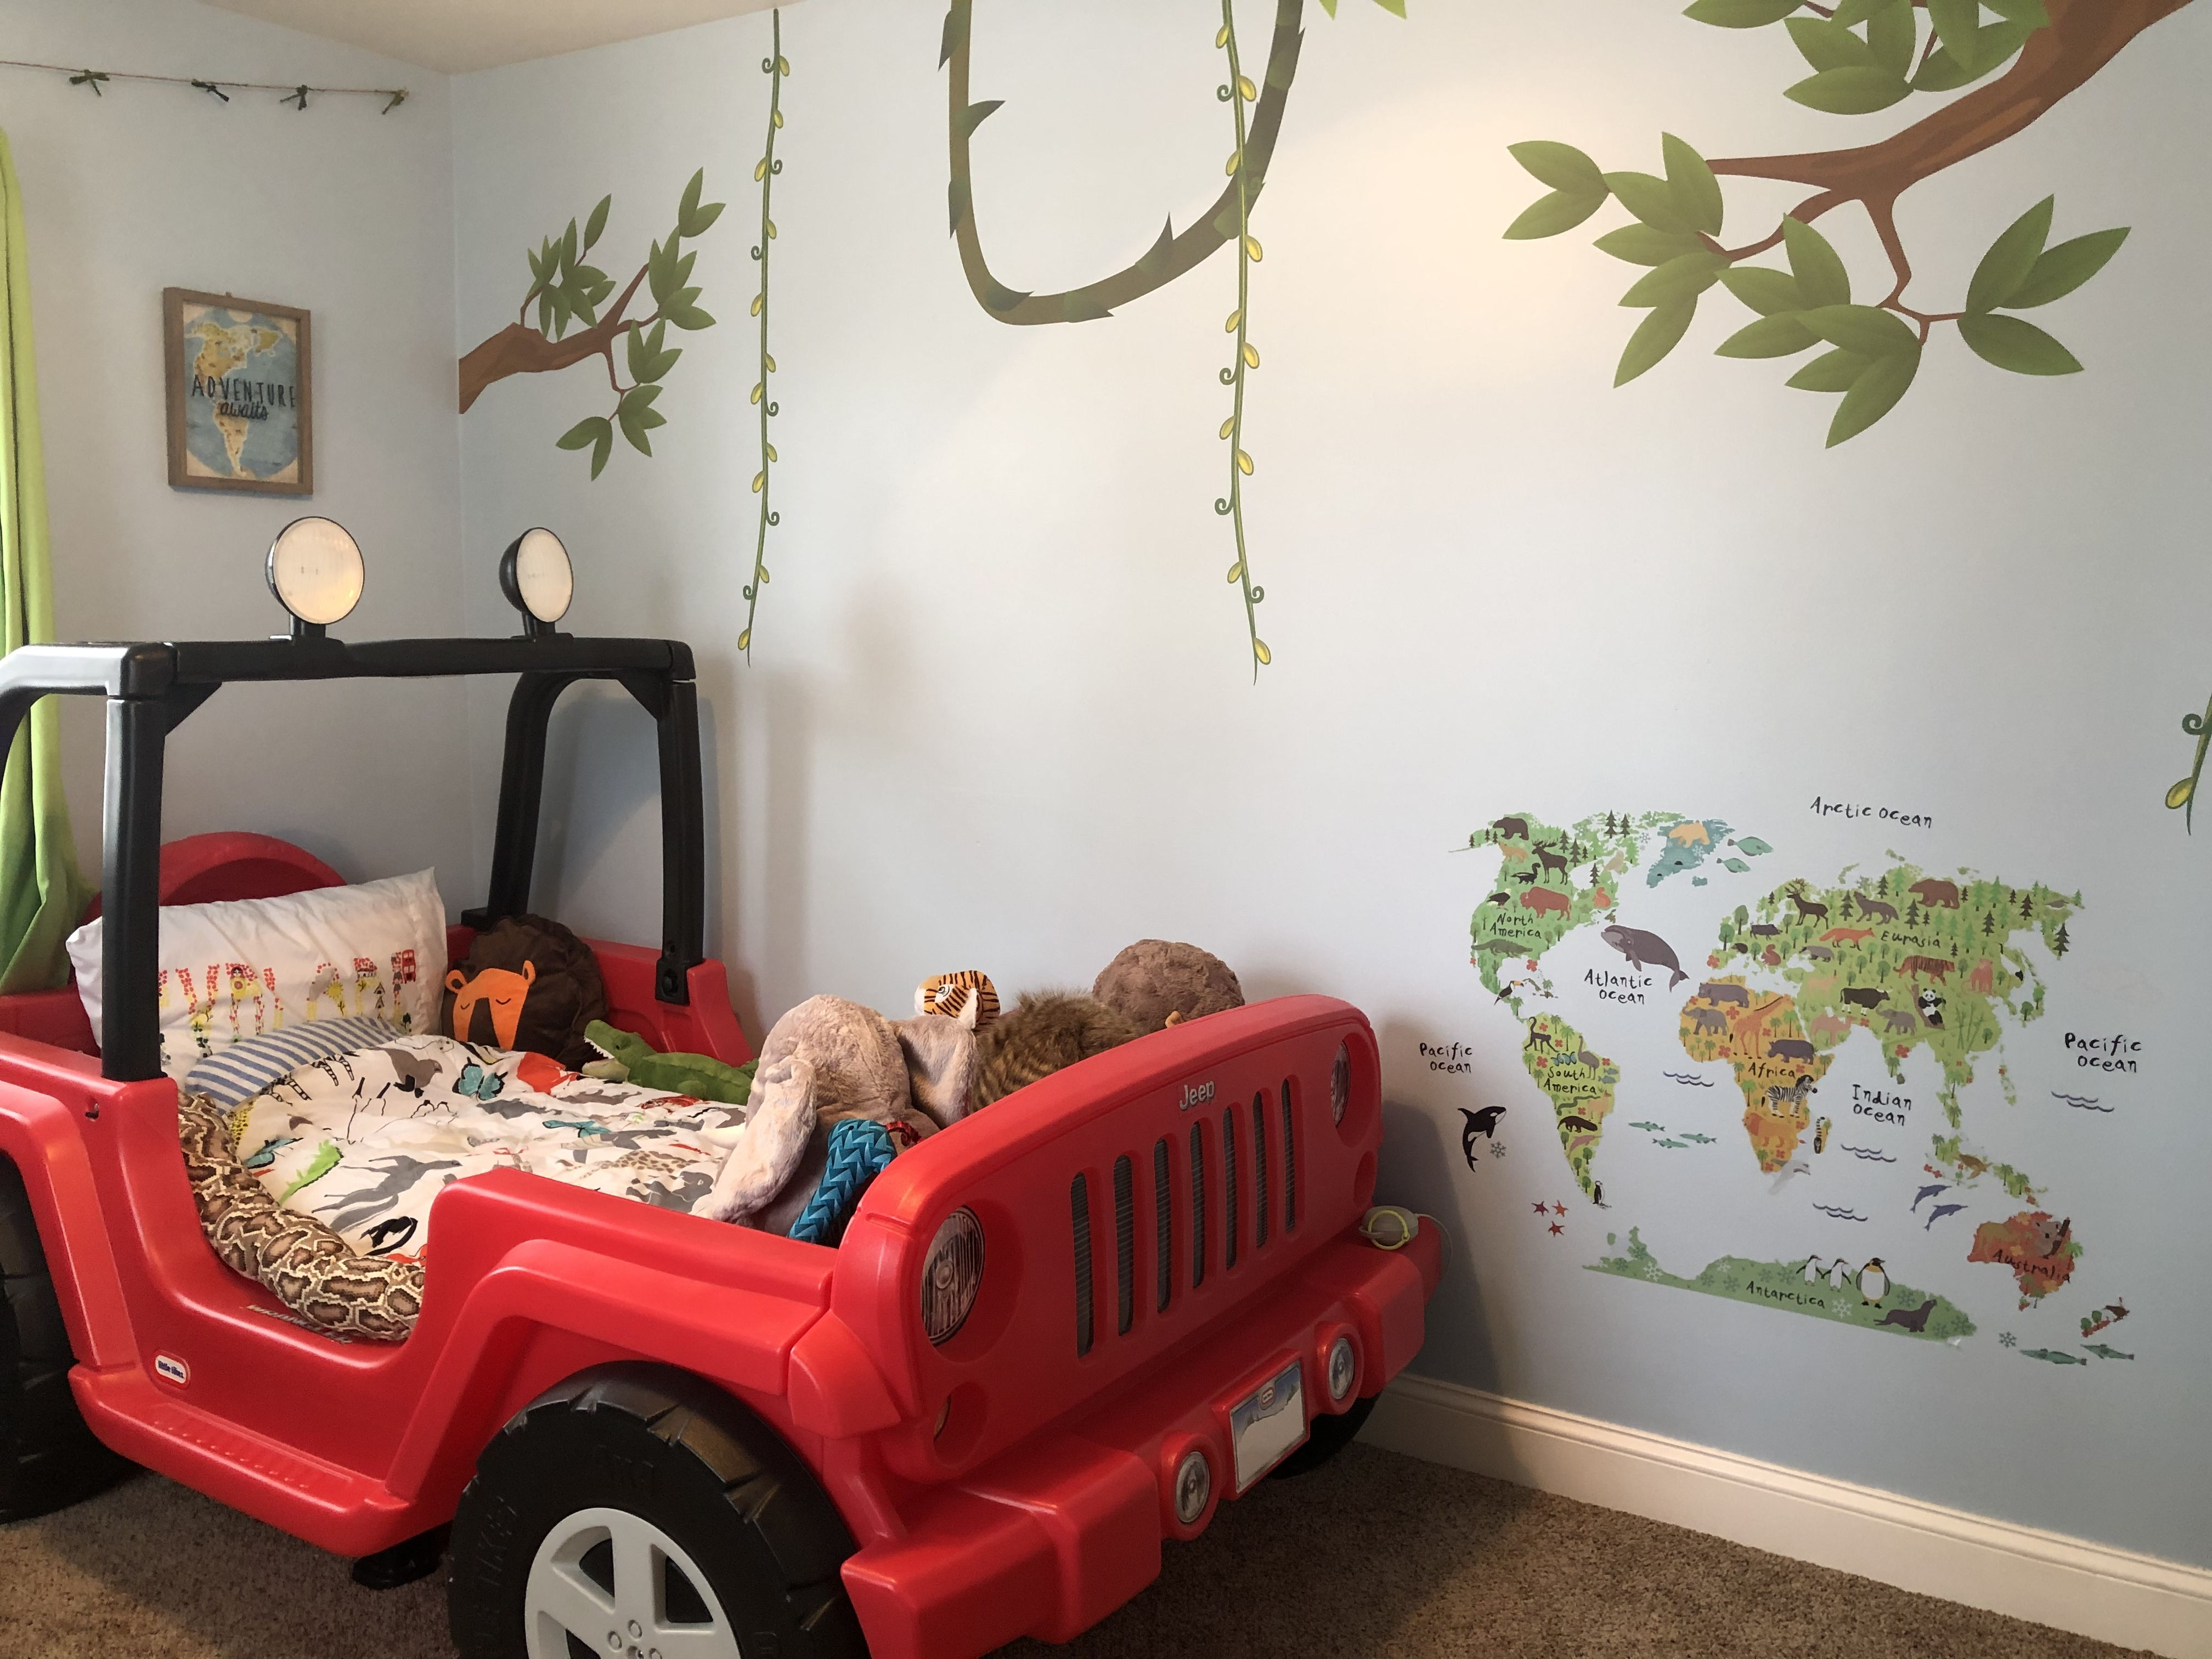 Toddler jungle room with Little Tikes Jeep bed Toddler